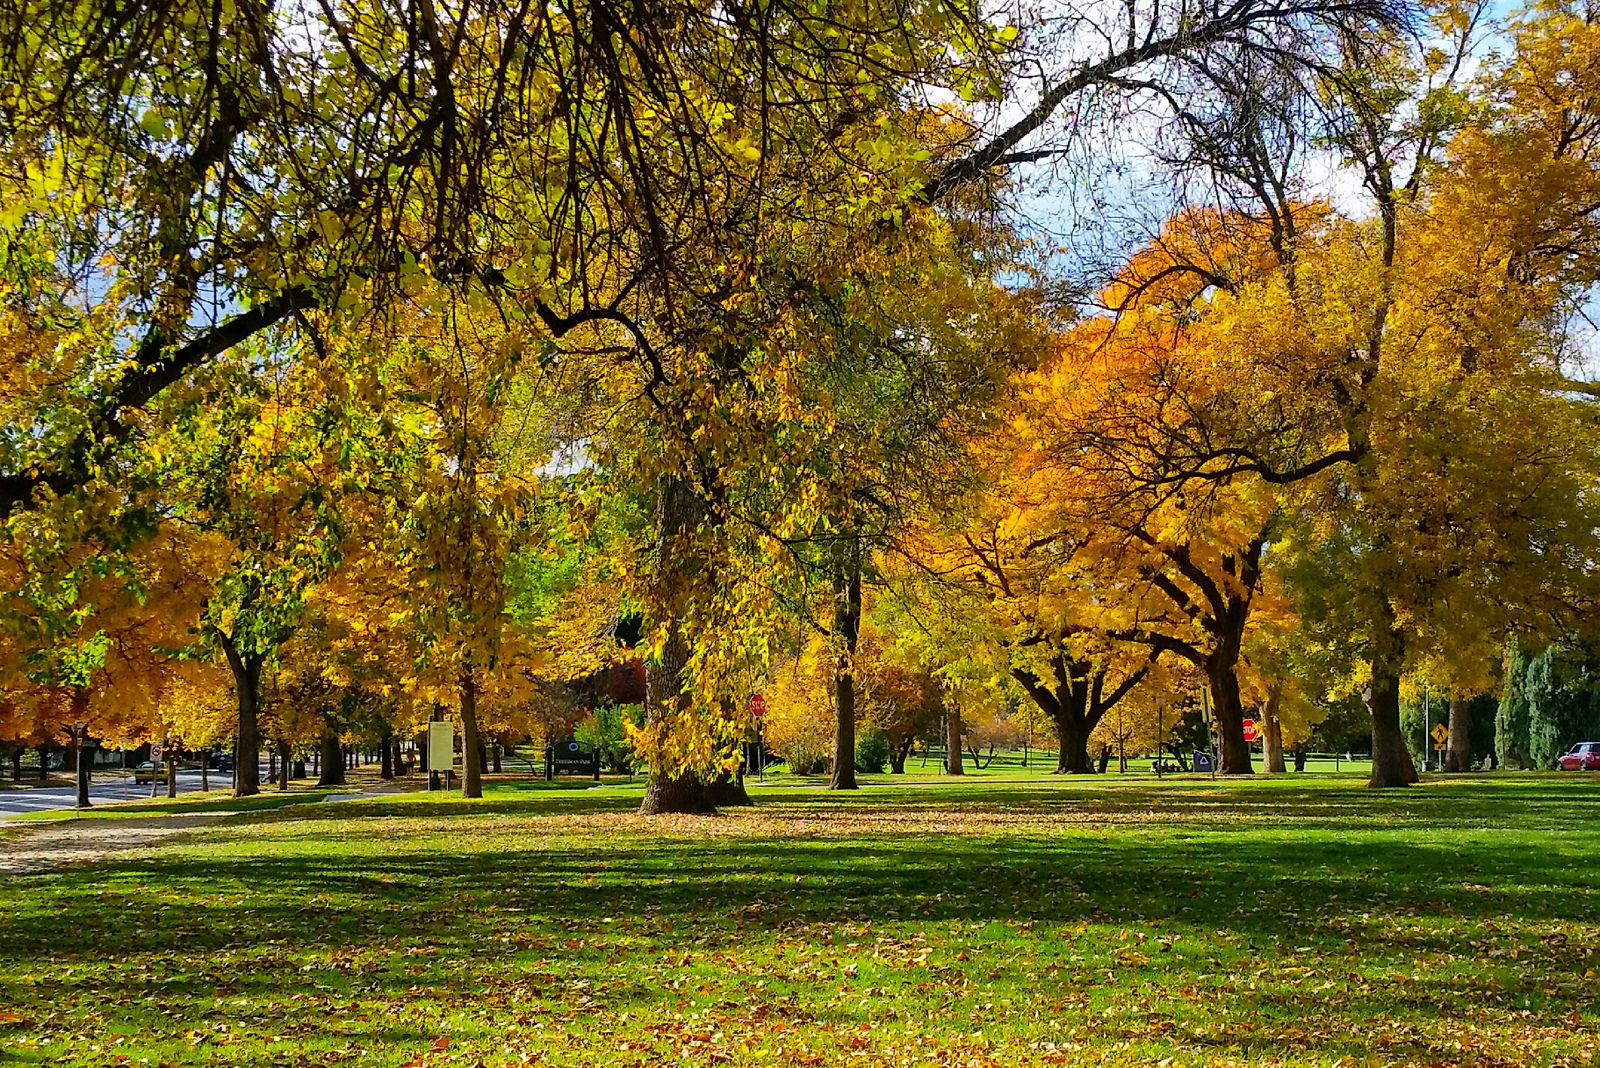 denver's city park in fall